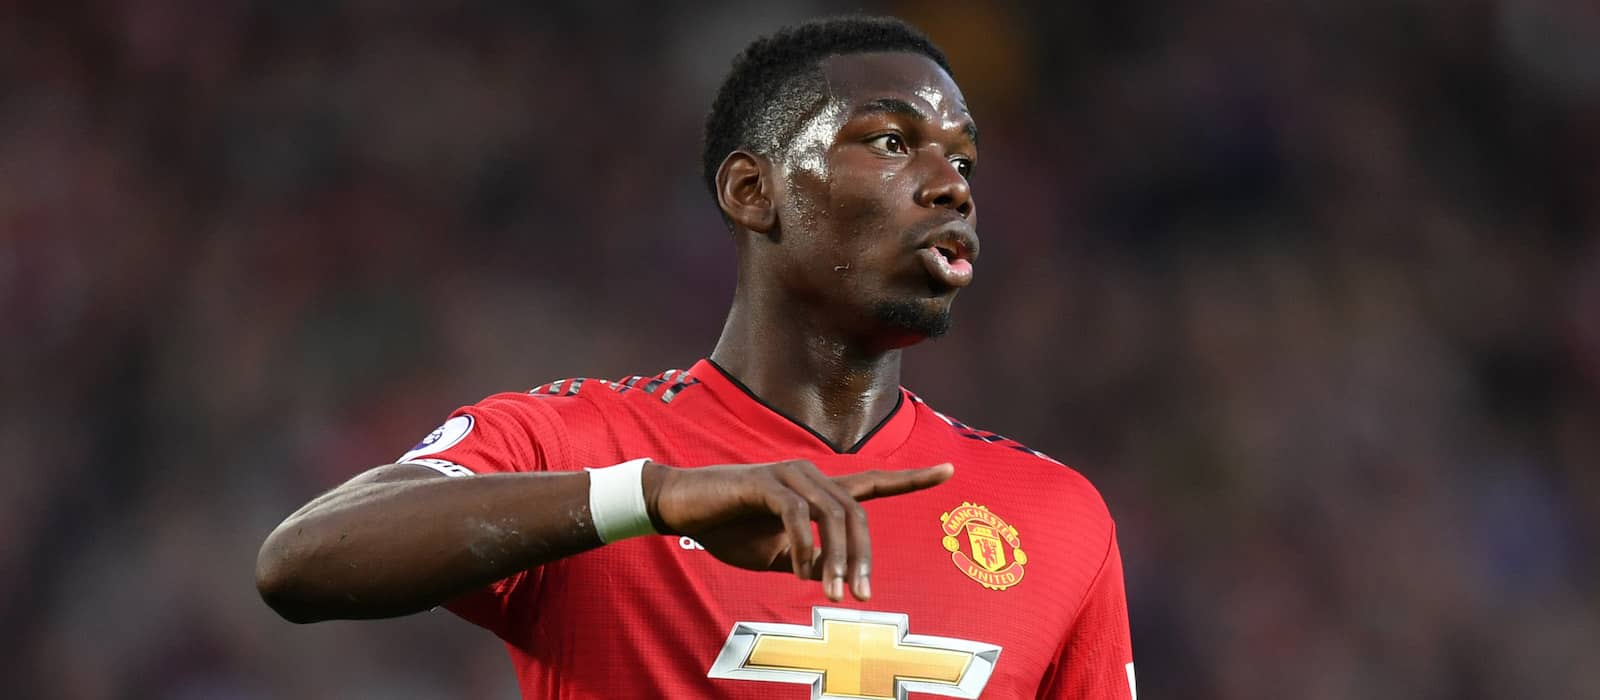 Manchester United selling Pogba back to Juventus is  impossible     Manchester United selling Pogba back to Juventus is  impossible   claims  Javier Ribalta